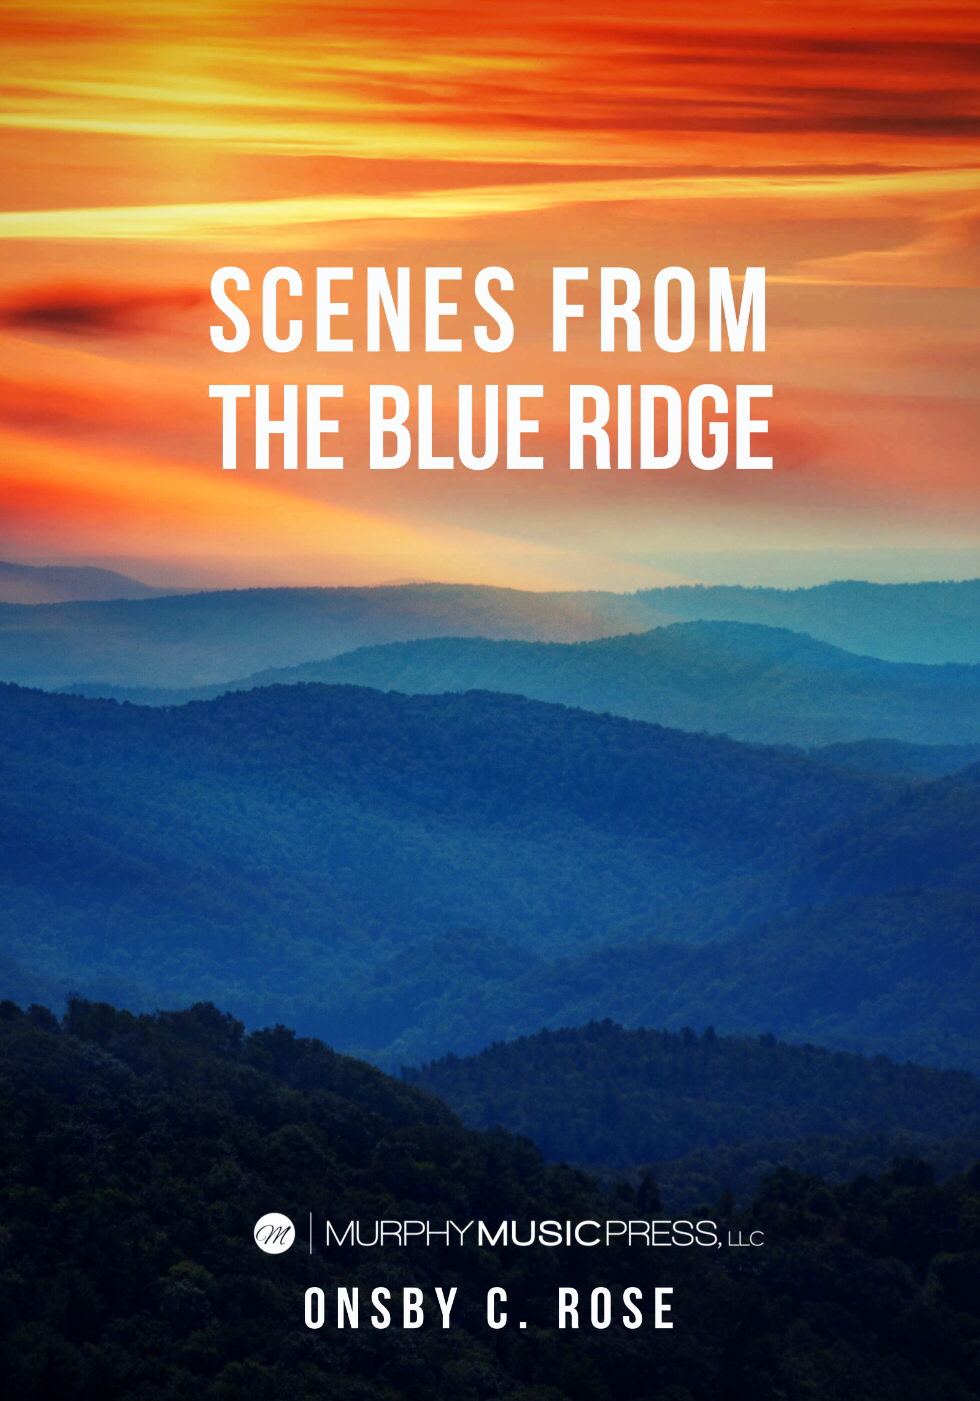 Scenes From The Blue Ridge by Onsby C. Rose